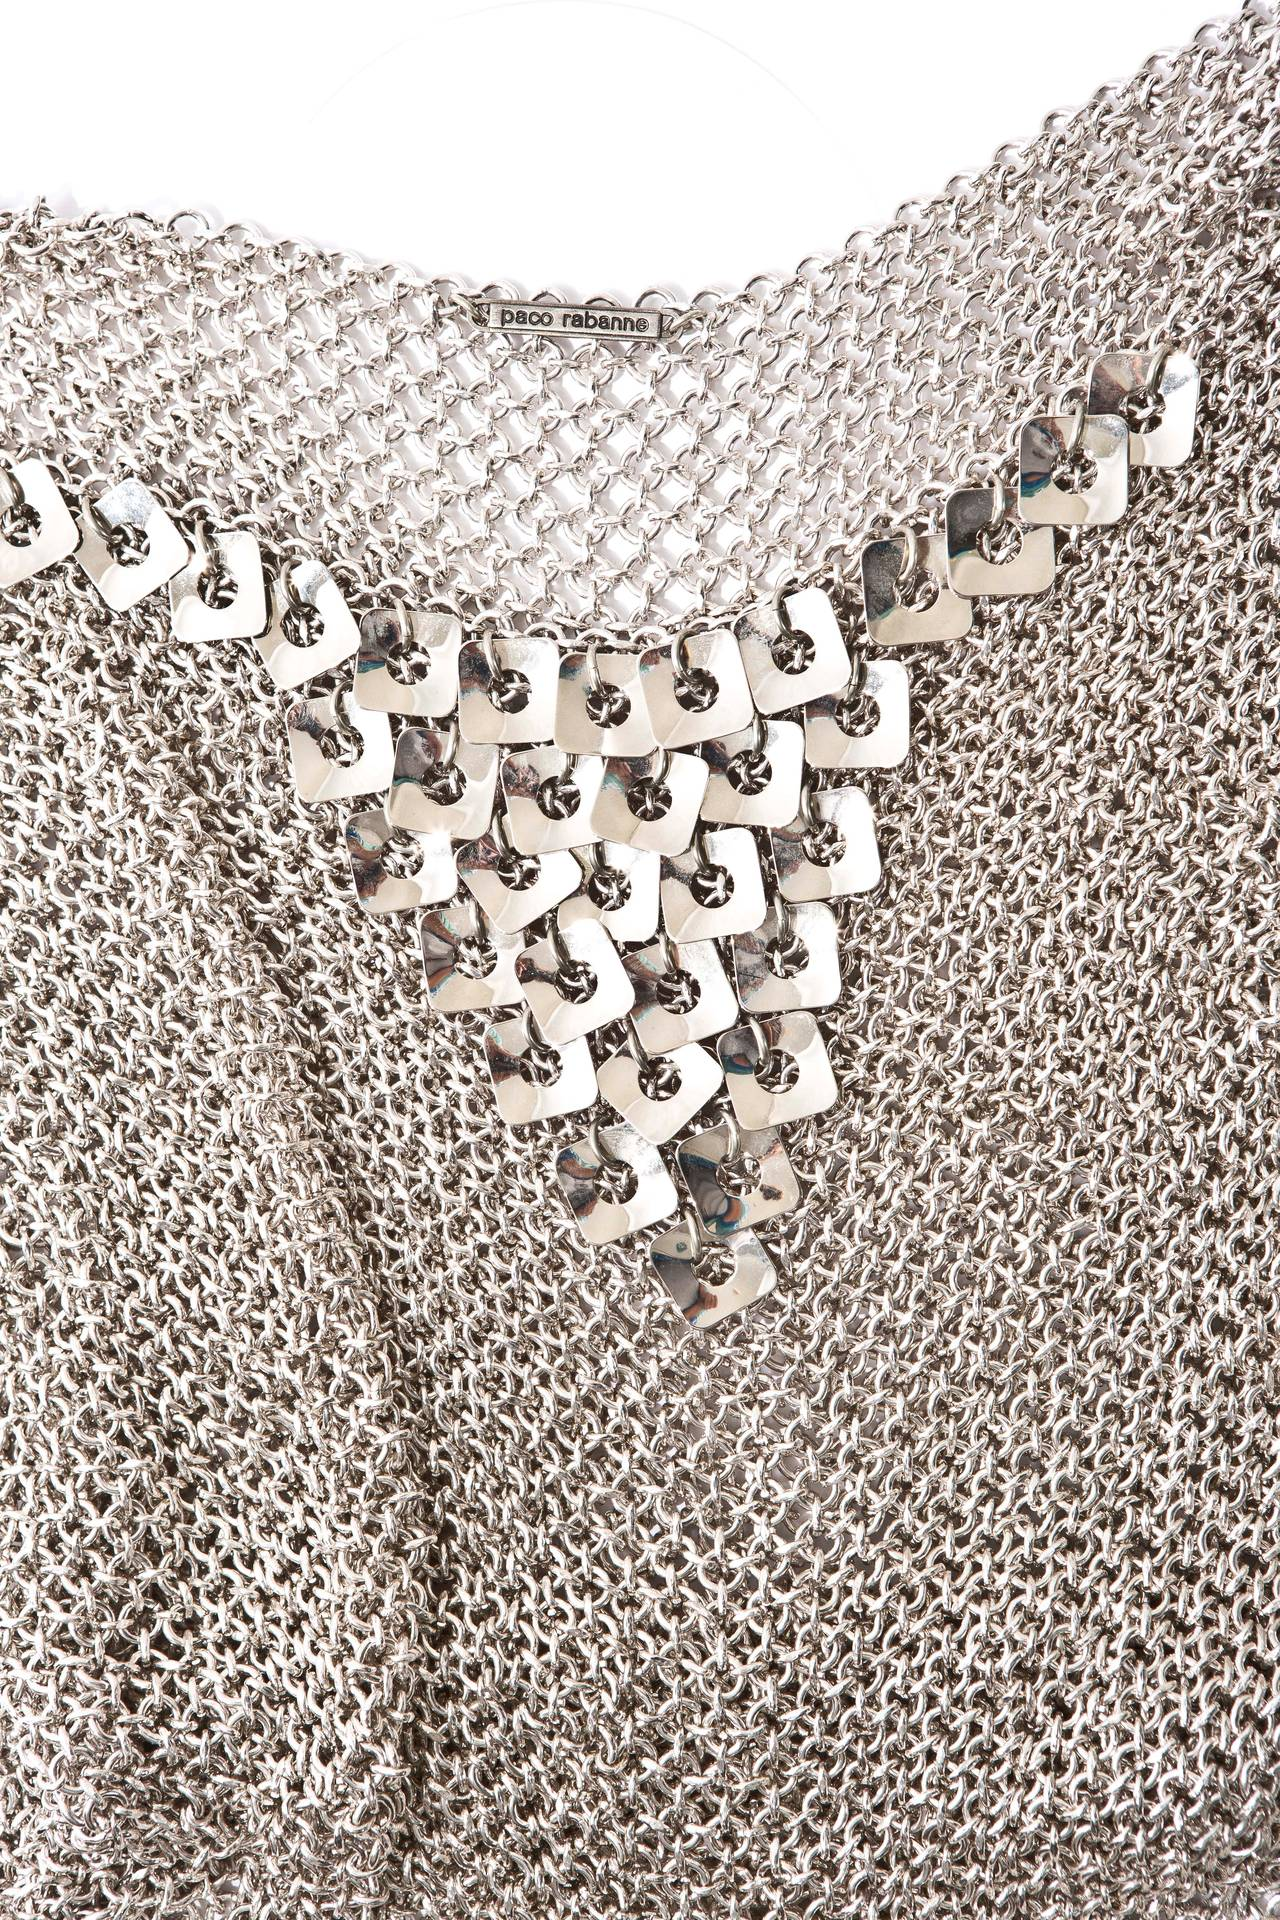 Paco Rabanne Chain Mail Top, Circa 1970's For Sale 1